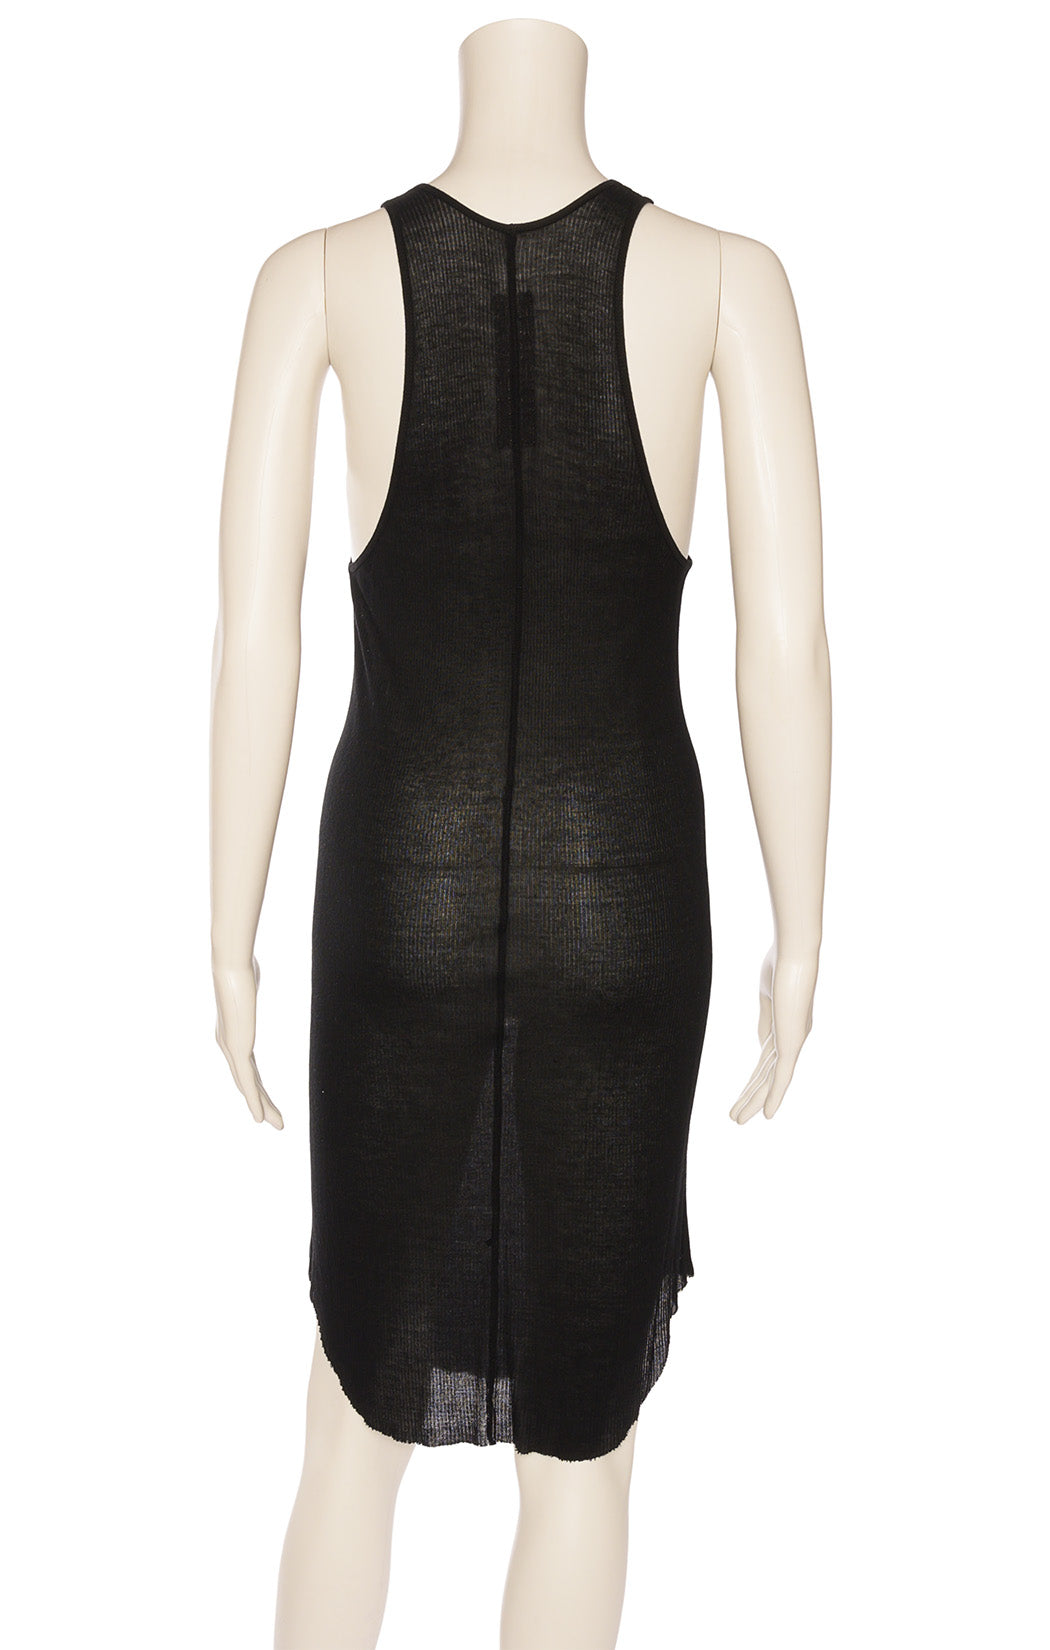 Black sleeveless tank style dress with long arm holes